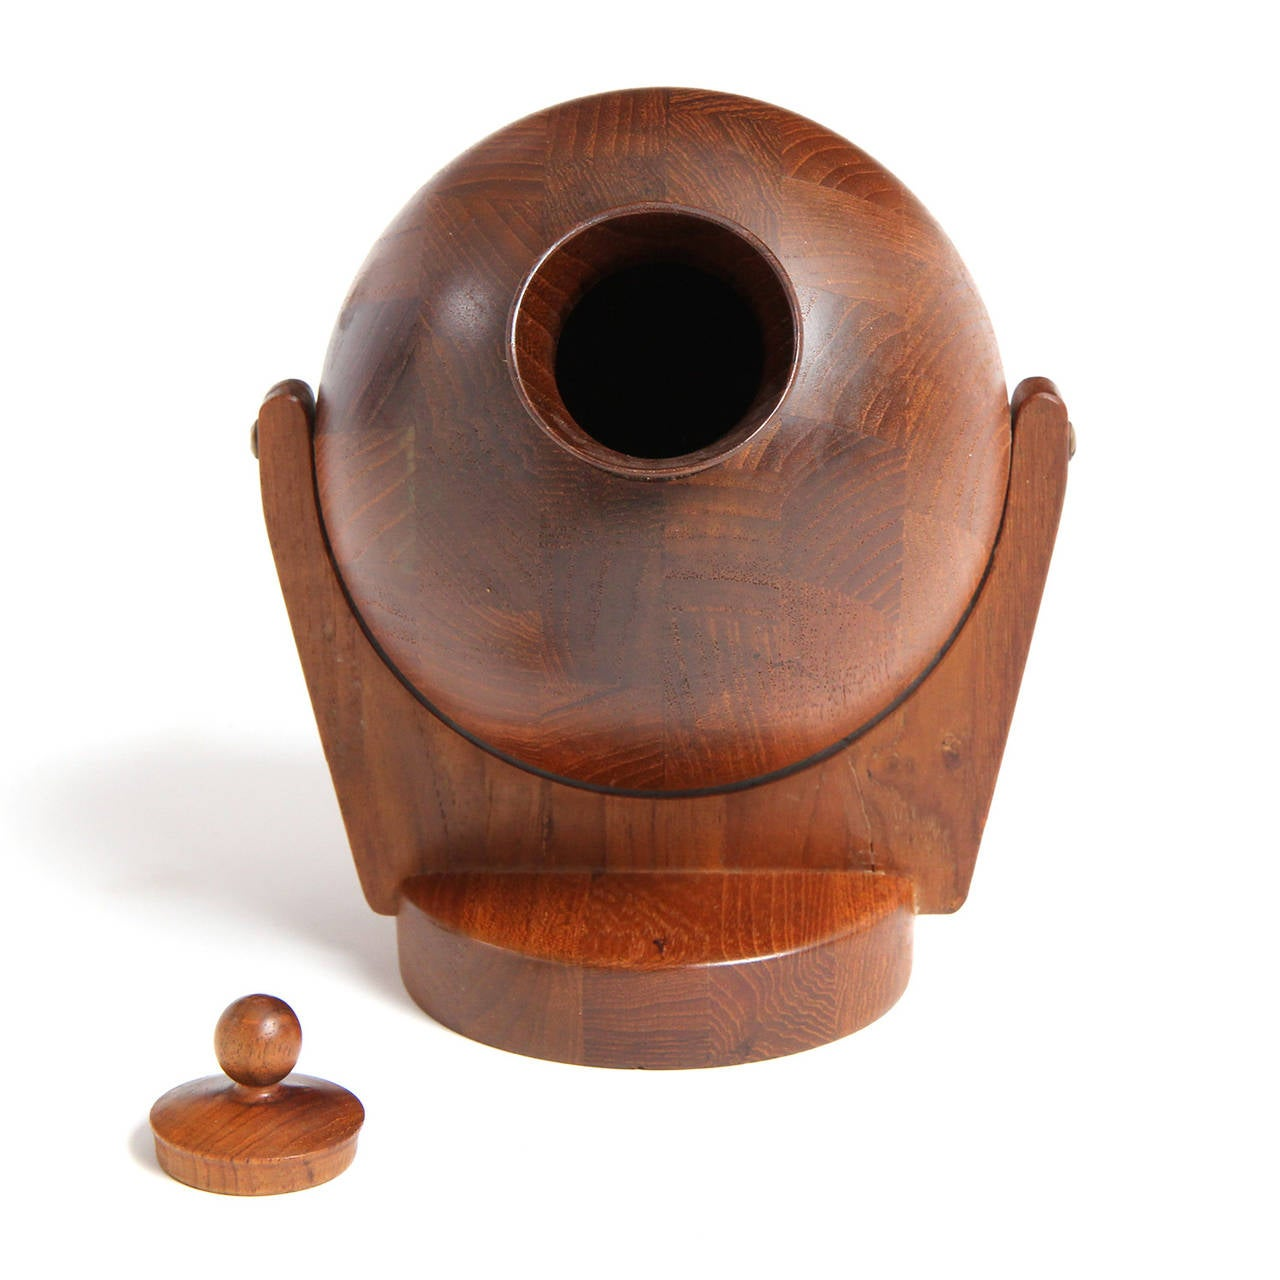 A wall-mounted lidded tobacco vessel having a rounded tilting form on mounted arms crafted of turned and carved richly figured teak.